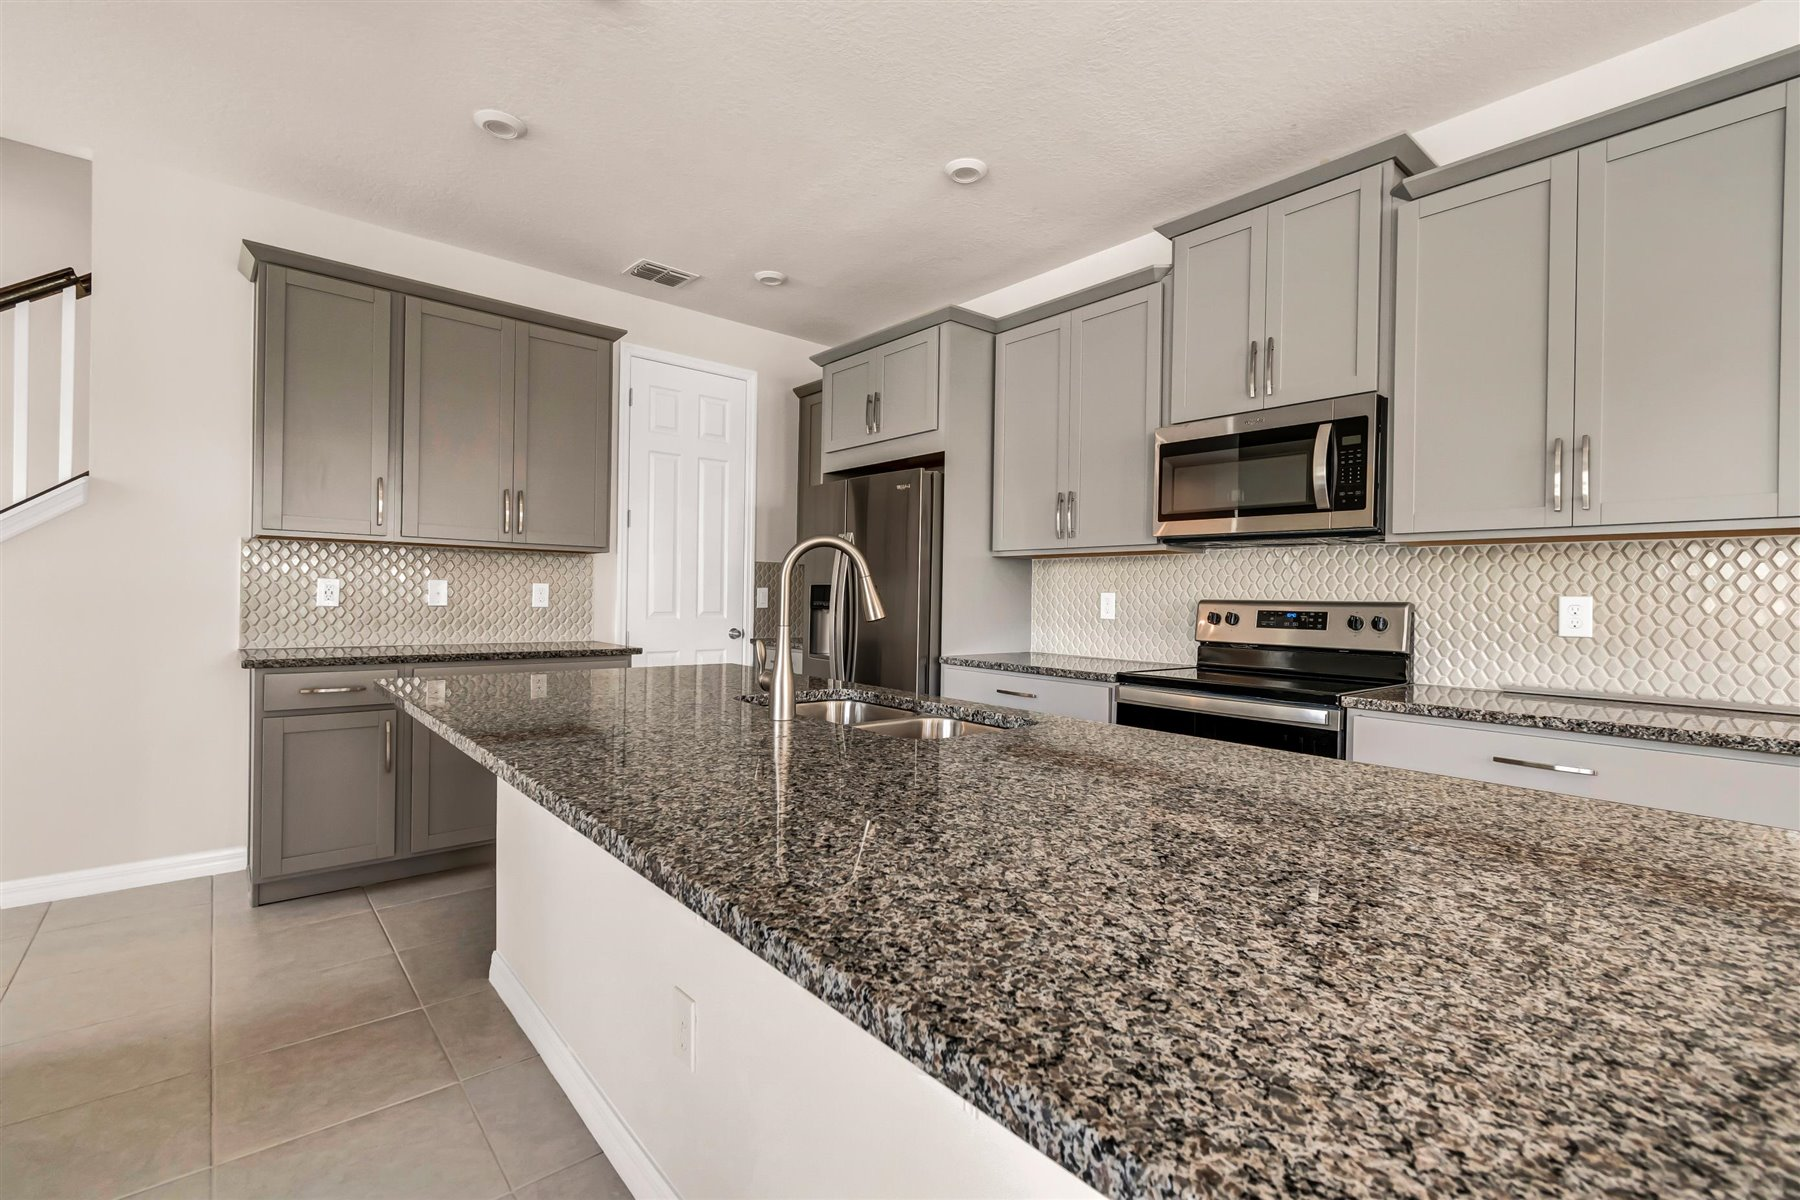 Minneola Plan Kitchen at Legado in Windermere Florida by Mattamy Homes